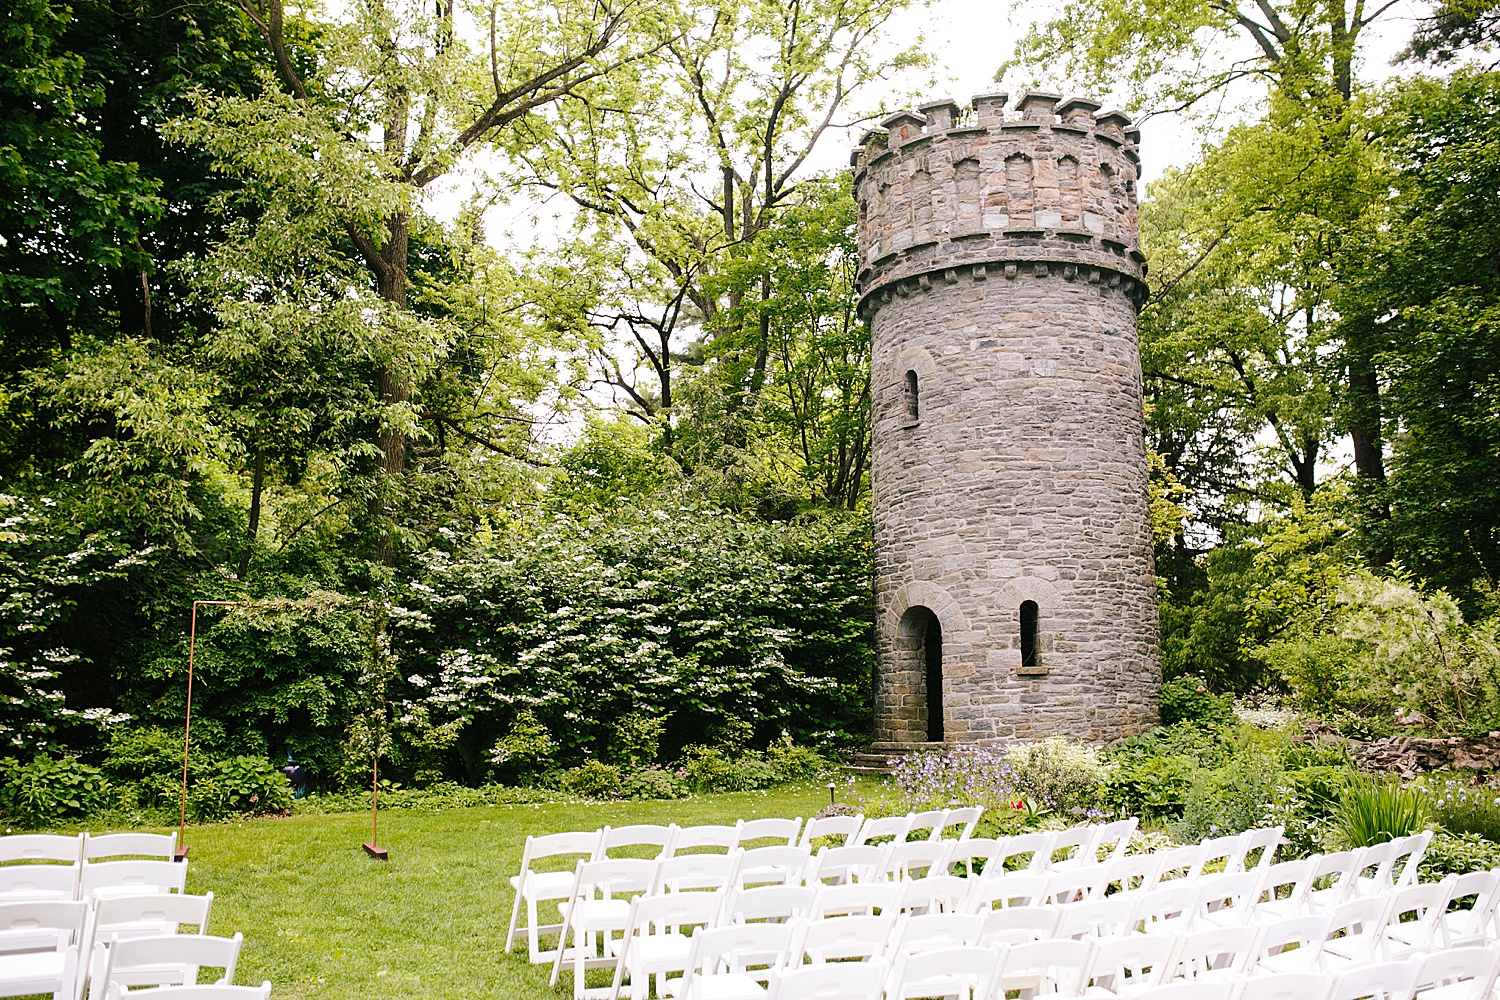 chelseachris_duke_art_gallery_wedding_image_047.jpg